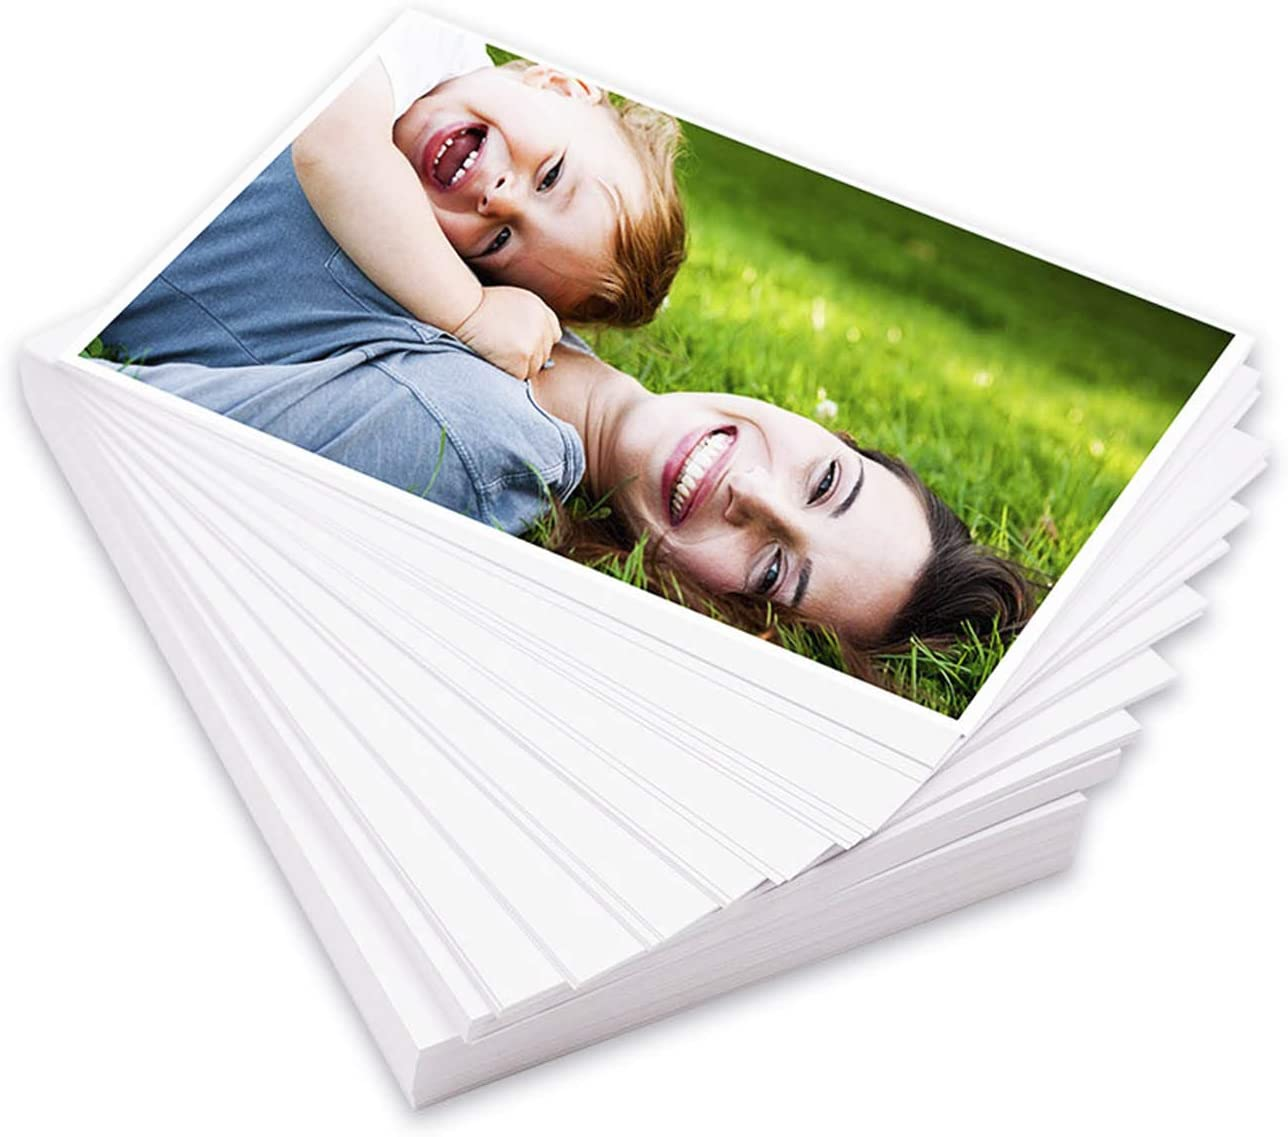 """Keep Better 500 Sheets 4""""x 6"""" 4R High Glossy photographic Paper Waterproof Professional Photo Paper Works with All Inkjet Printers 230gsm"""